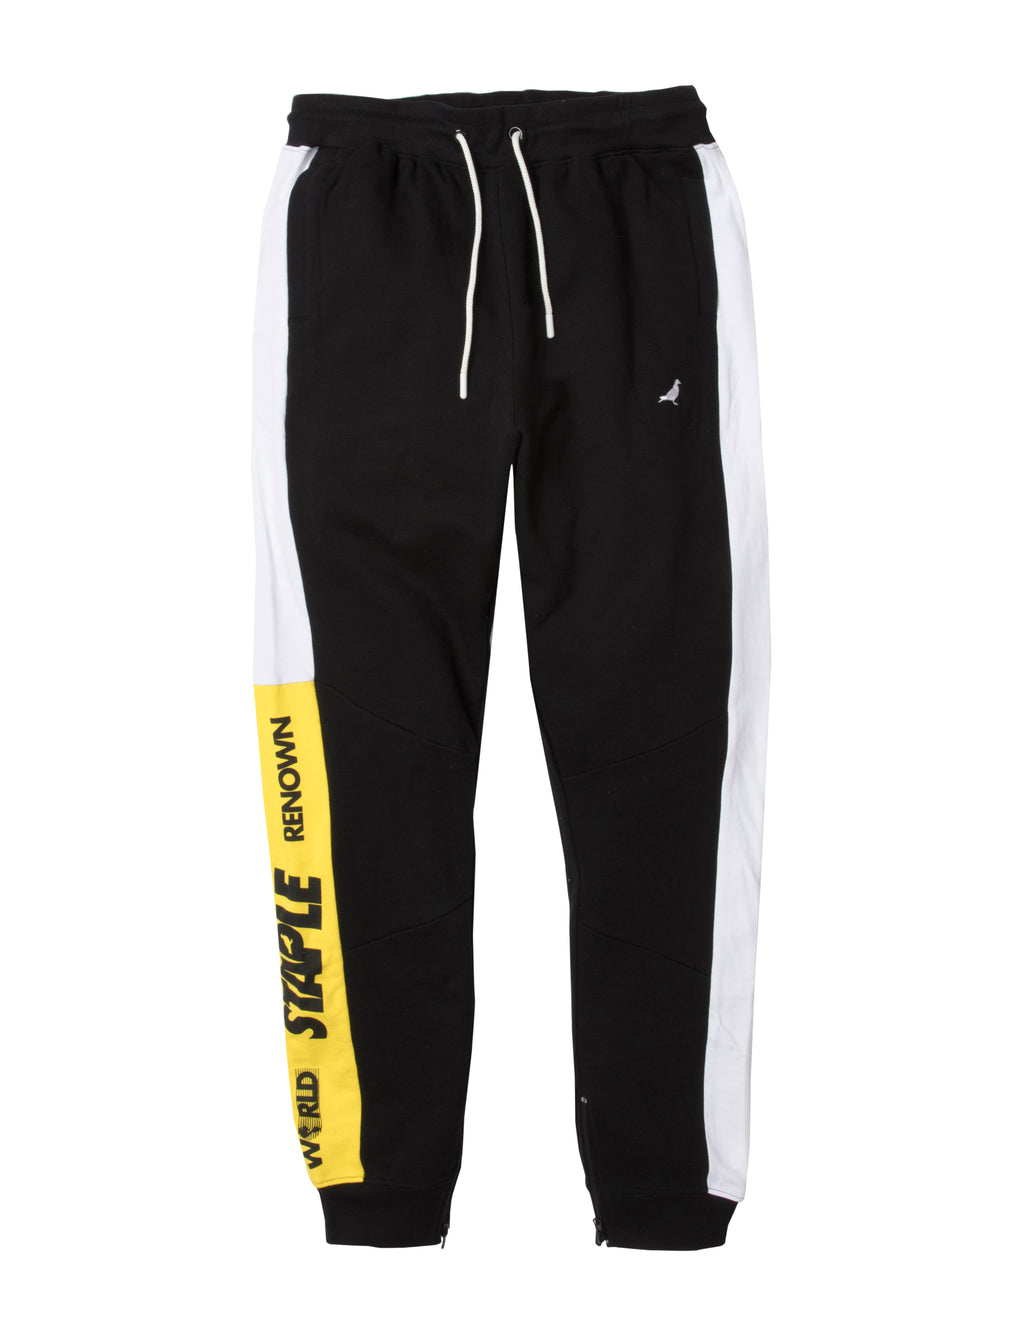 Caution Sweatpants - Pants | Staple Pigeon